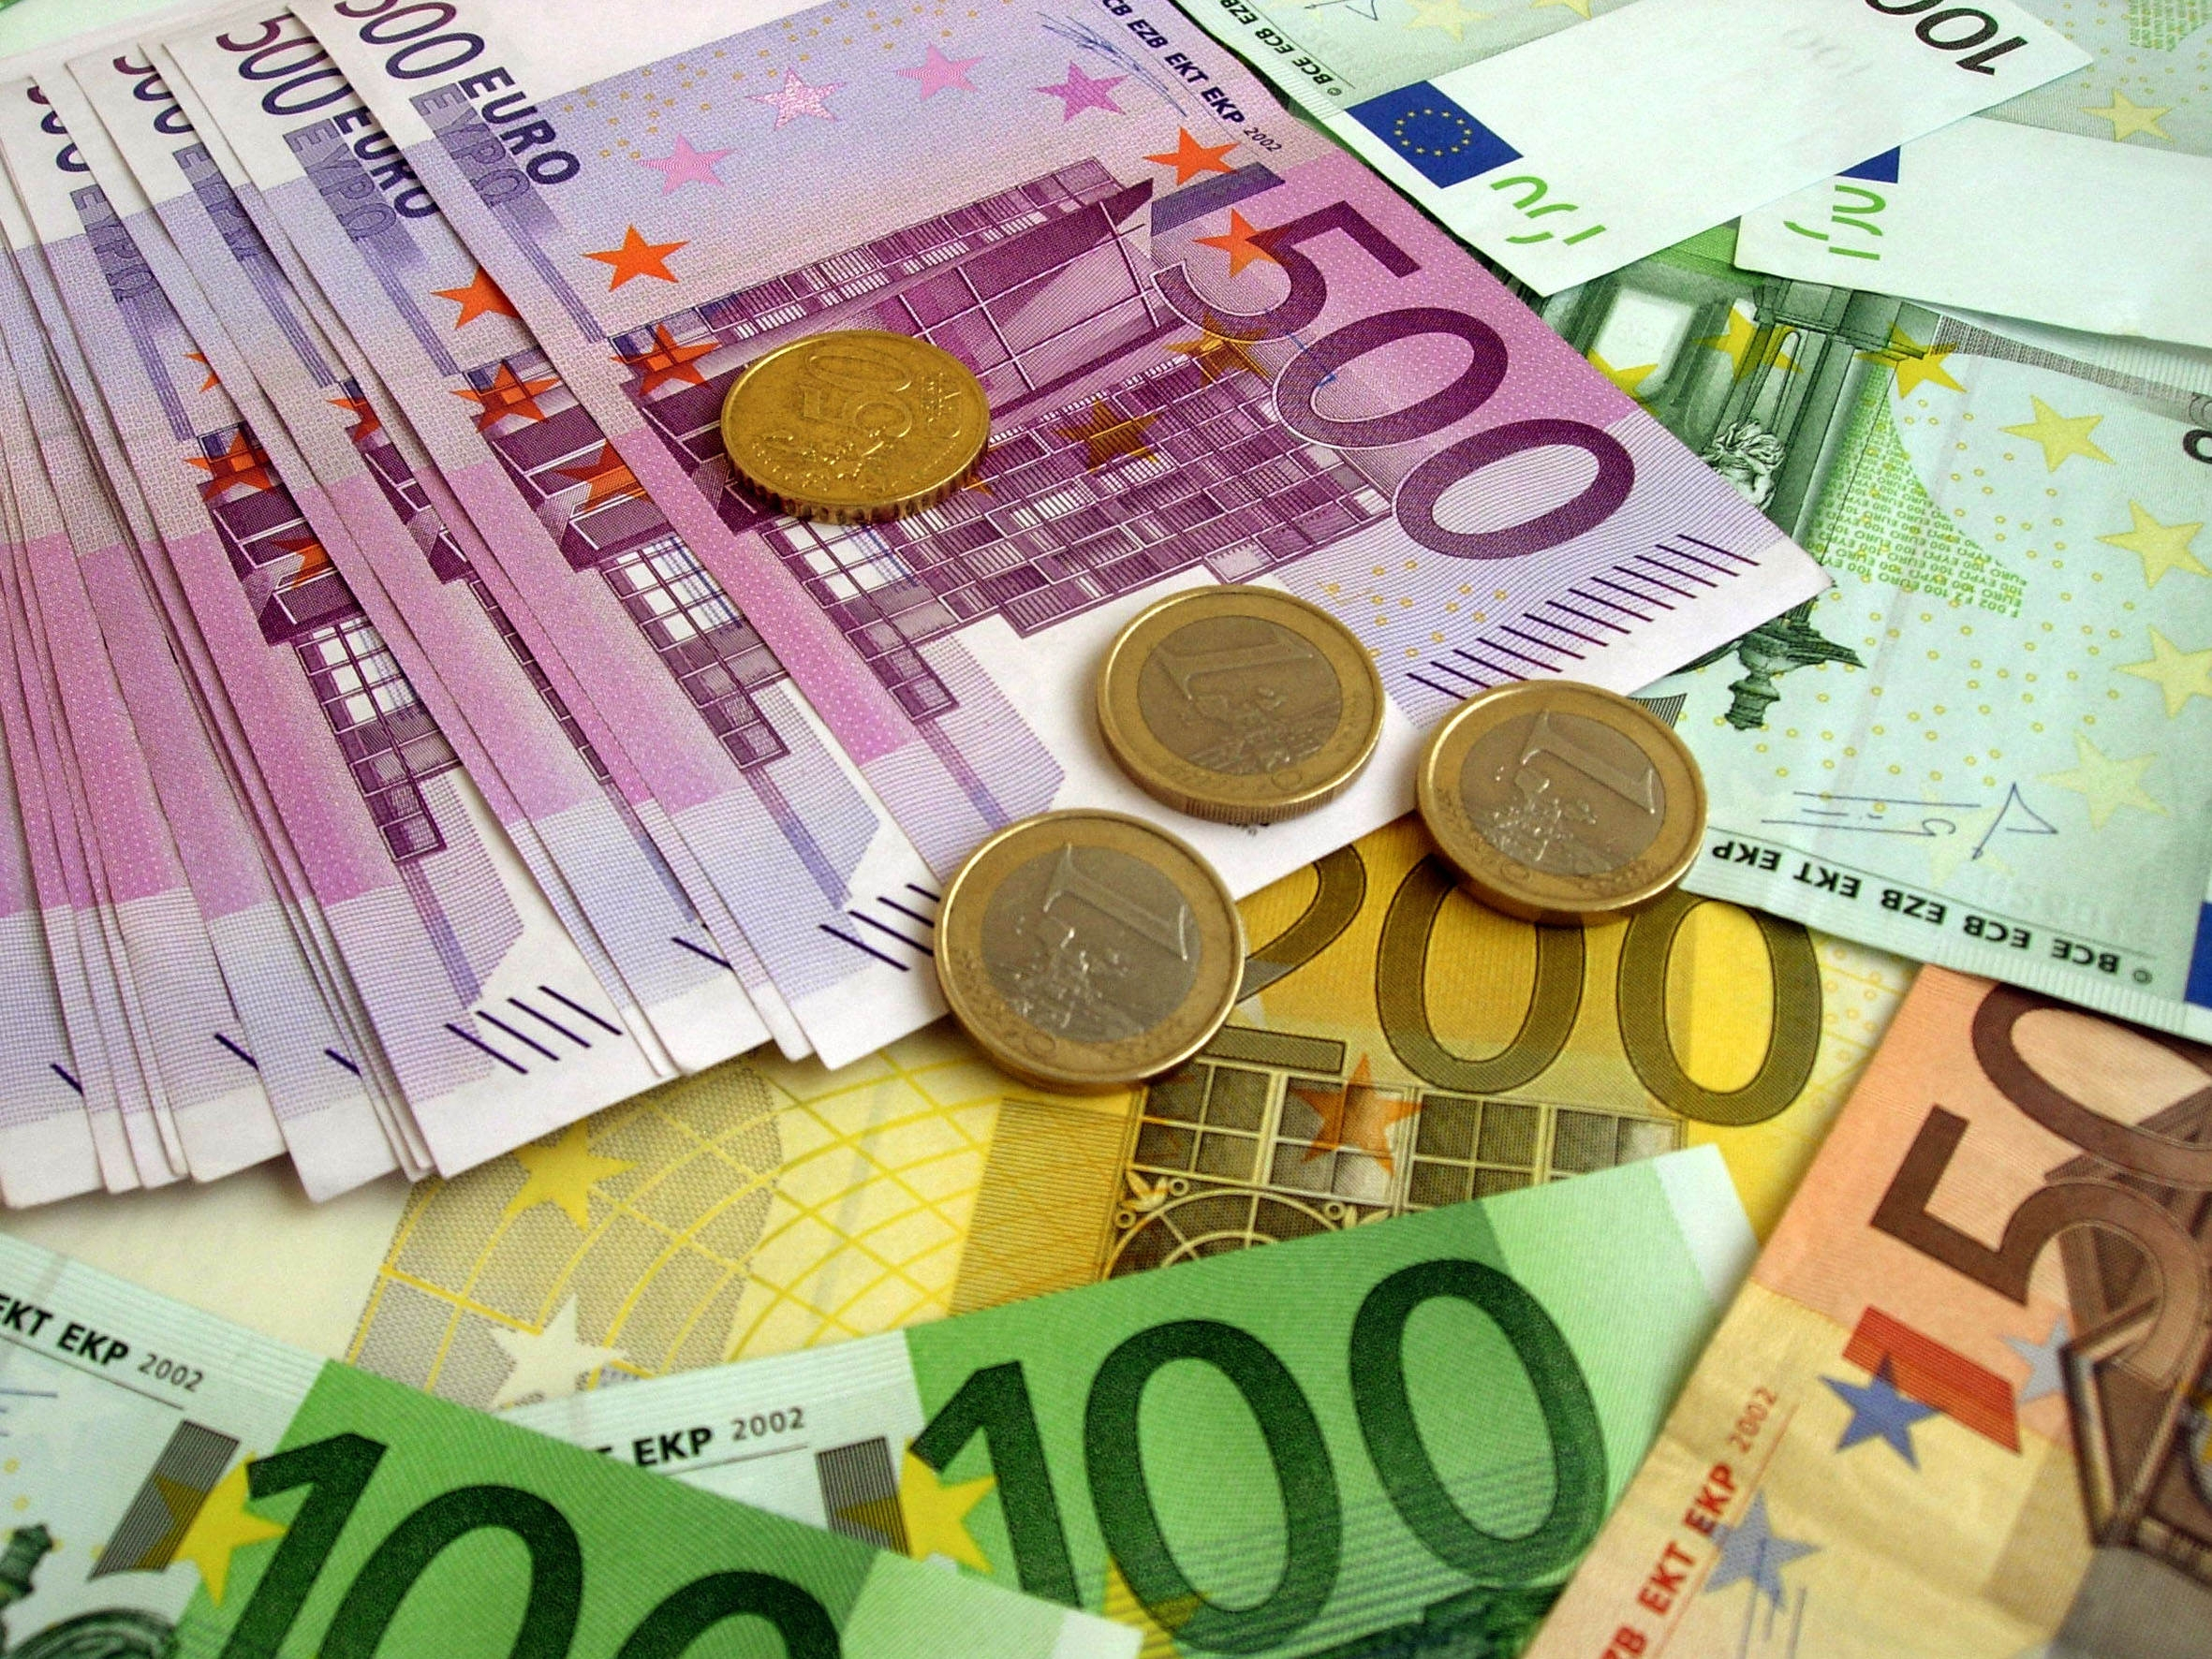 100284 download wallpaper Miscellanea, Miscellaneous, Money, Euro, Banknotes, Bills, Coins screensavers and pictures for free